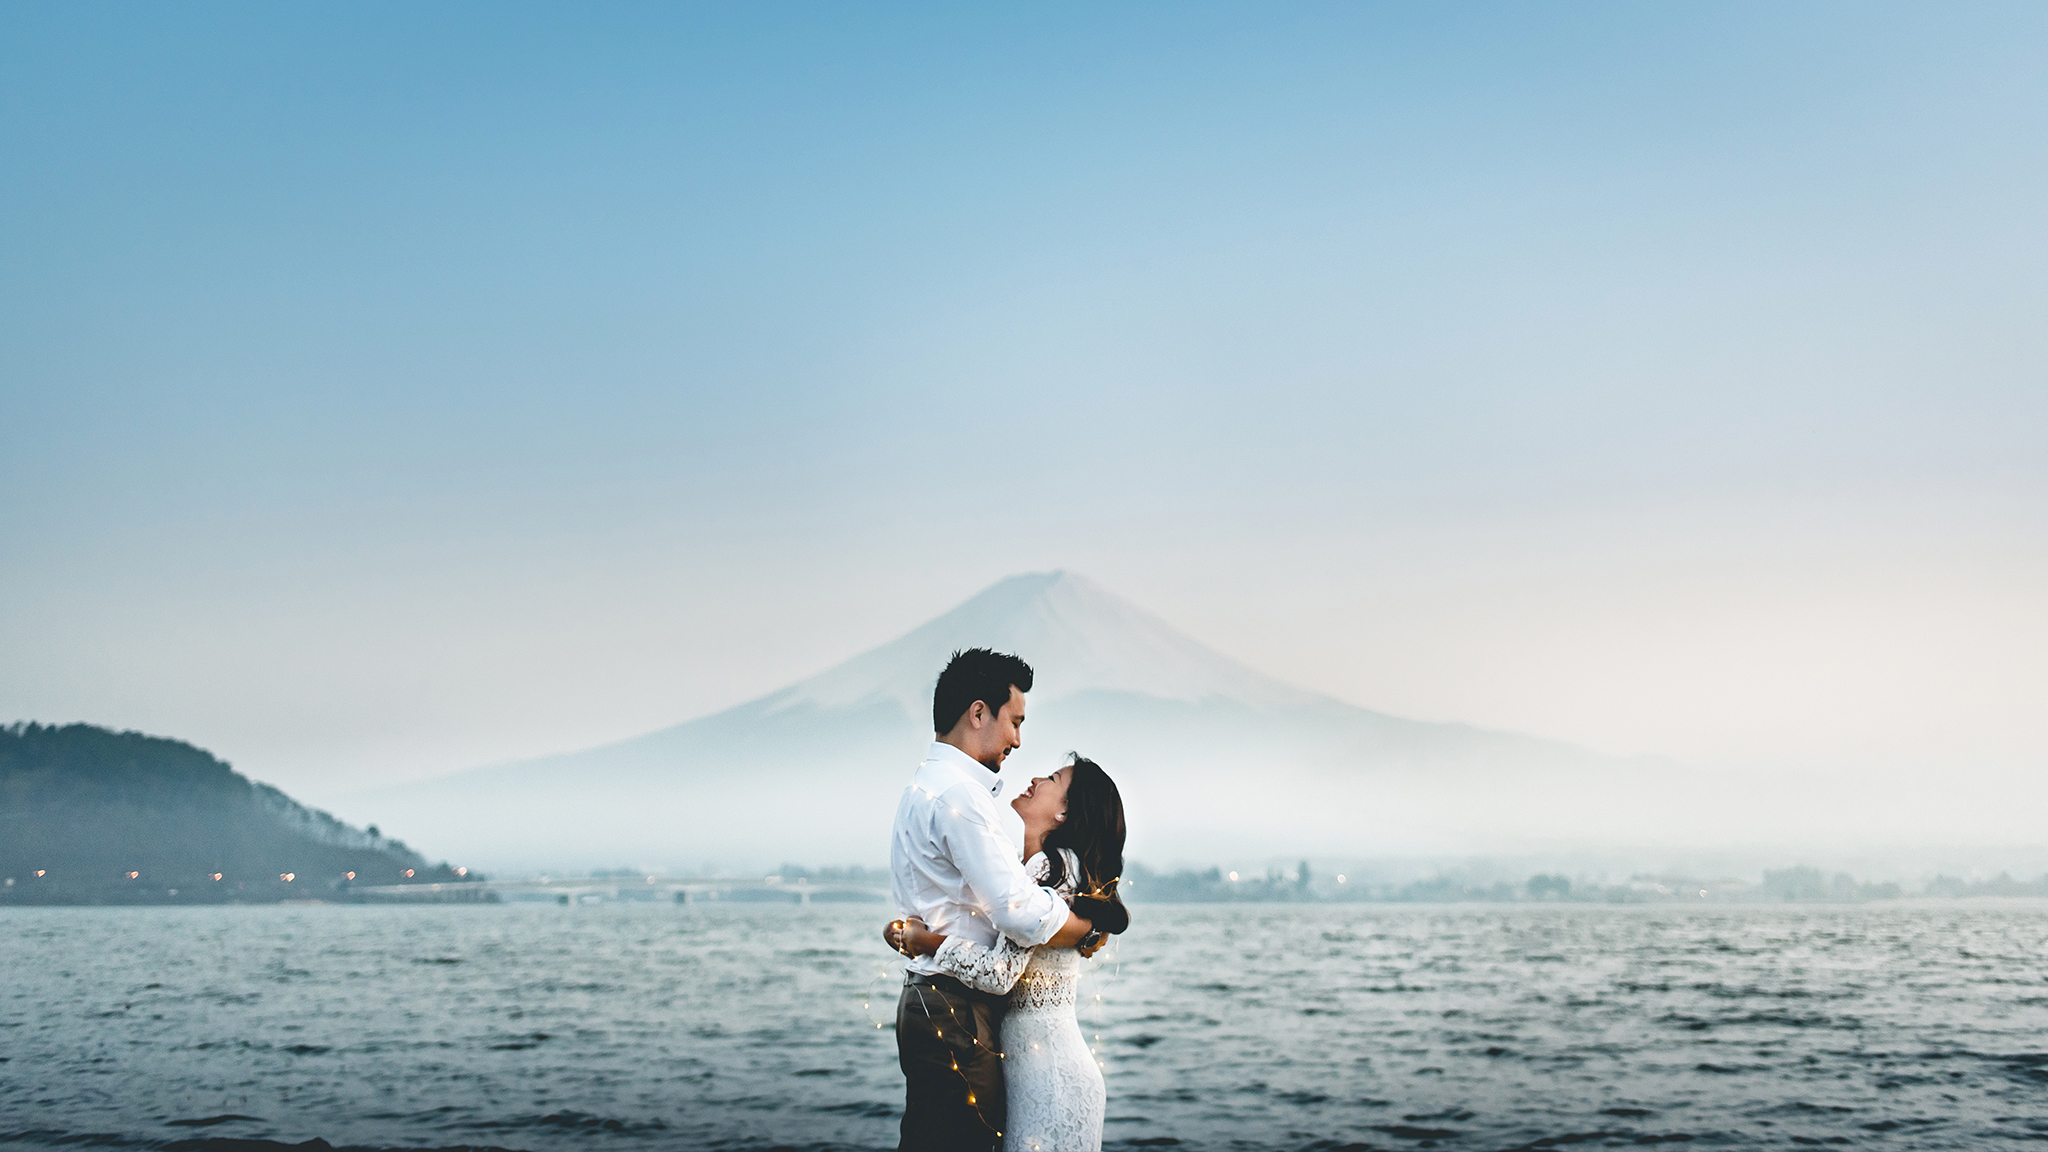 Japan Prewedding 47.JPG